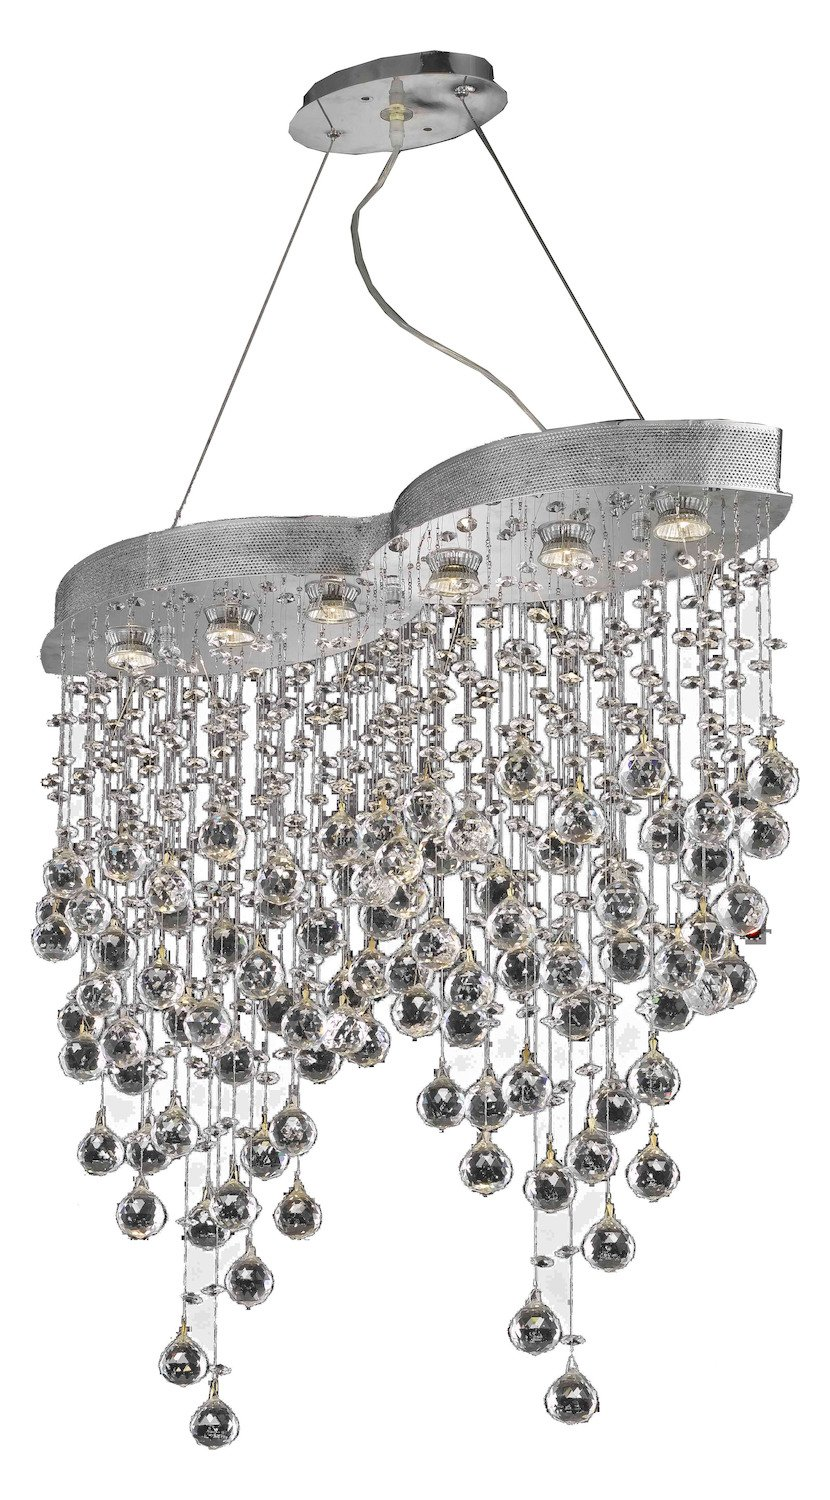 Galaxy Collection 6-Light Chrome Fix With Clear Swarovski Spectra Crystal